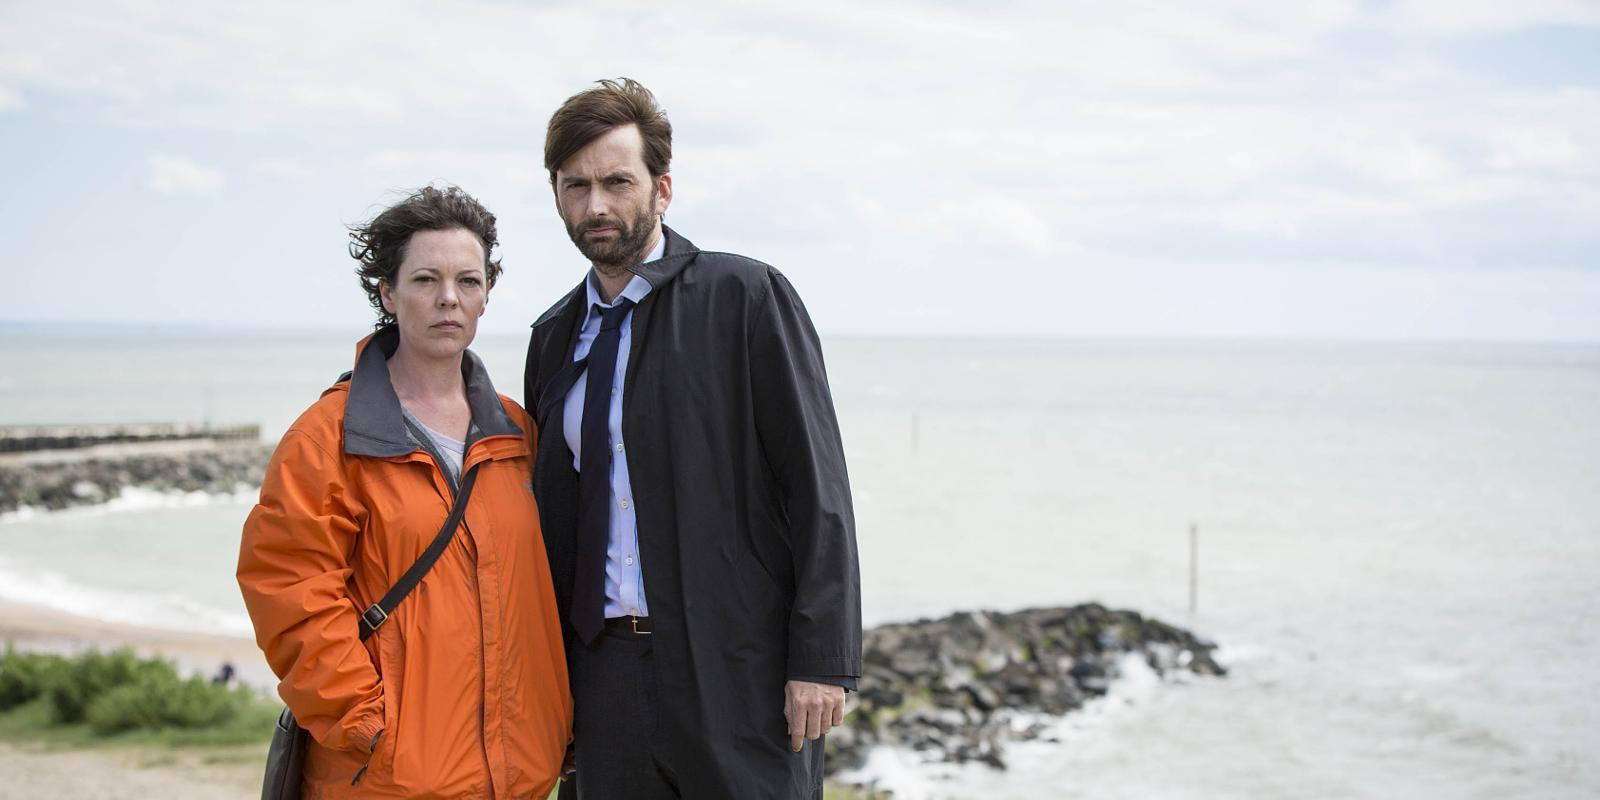 Broadchurch series 2 episode 3 recap: Heartbreaking times for Ellie